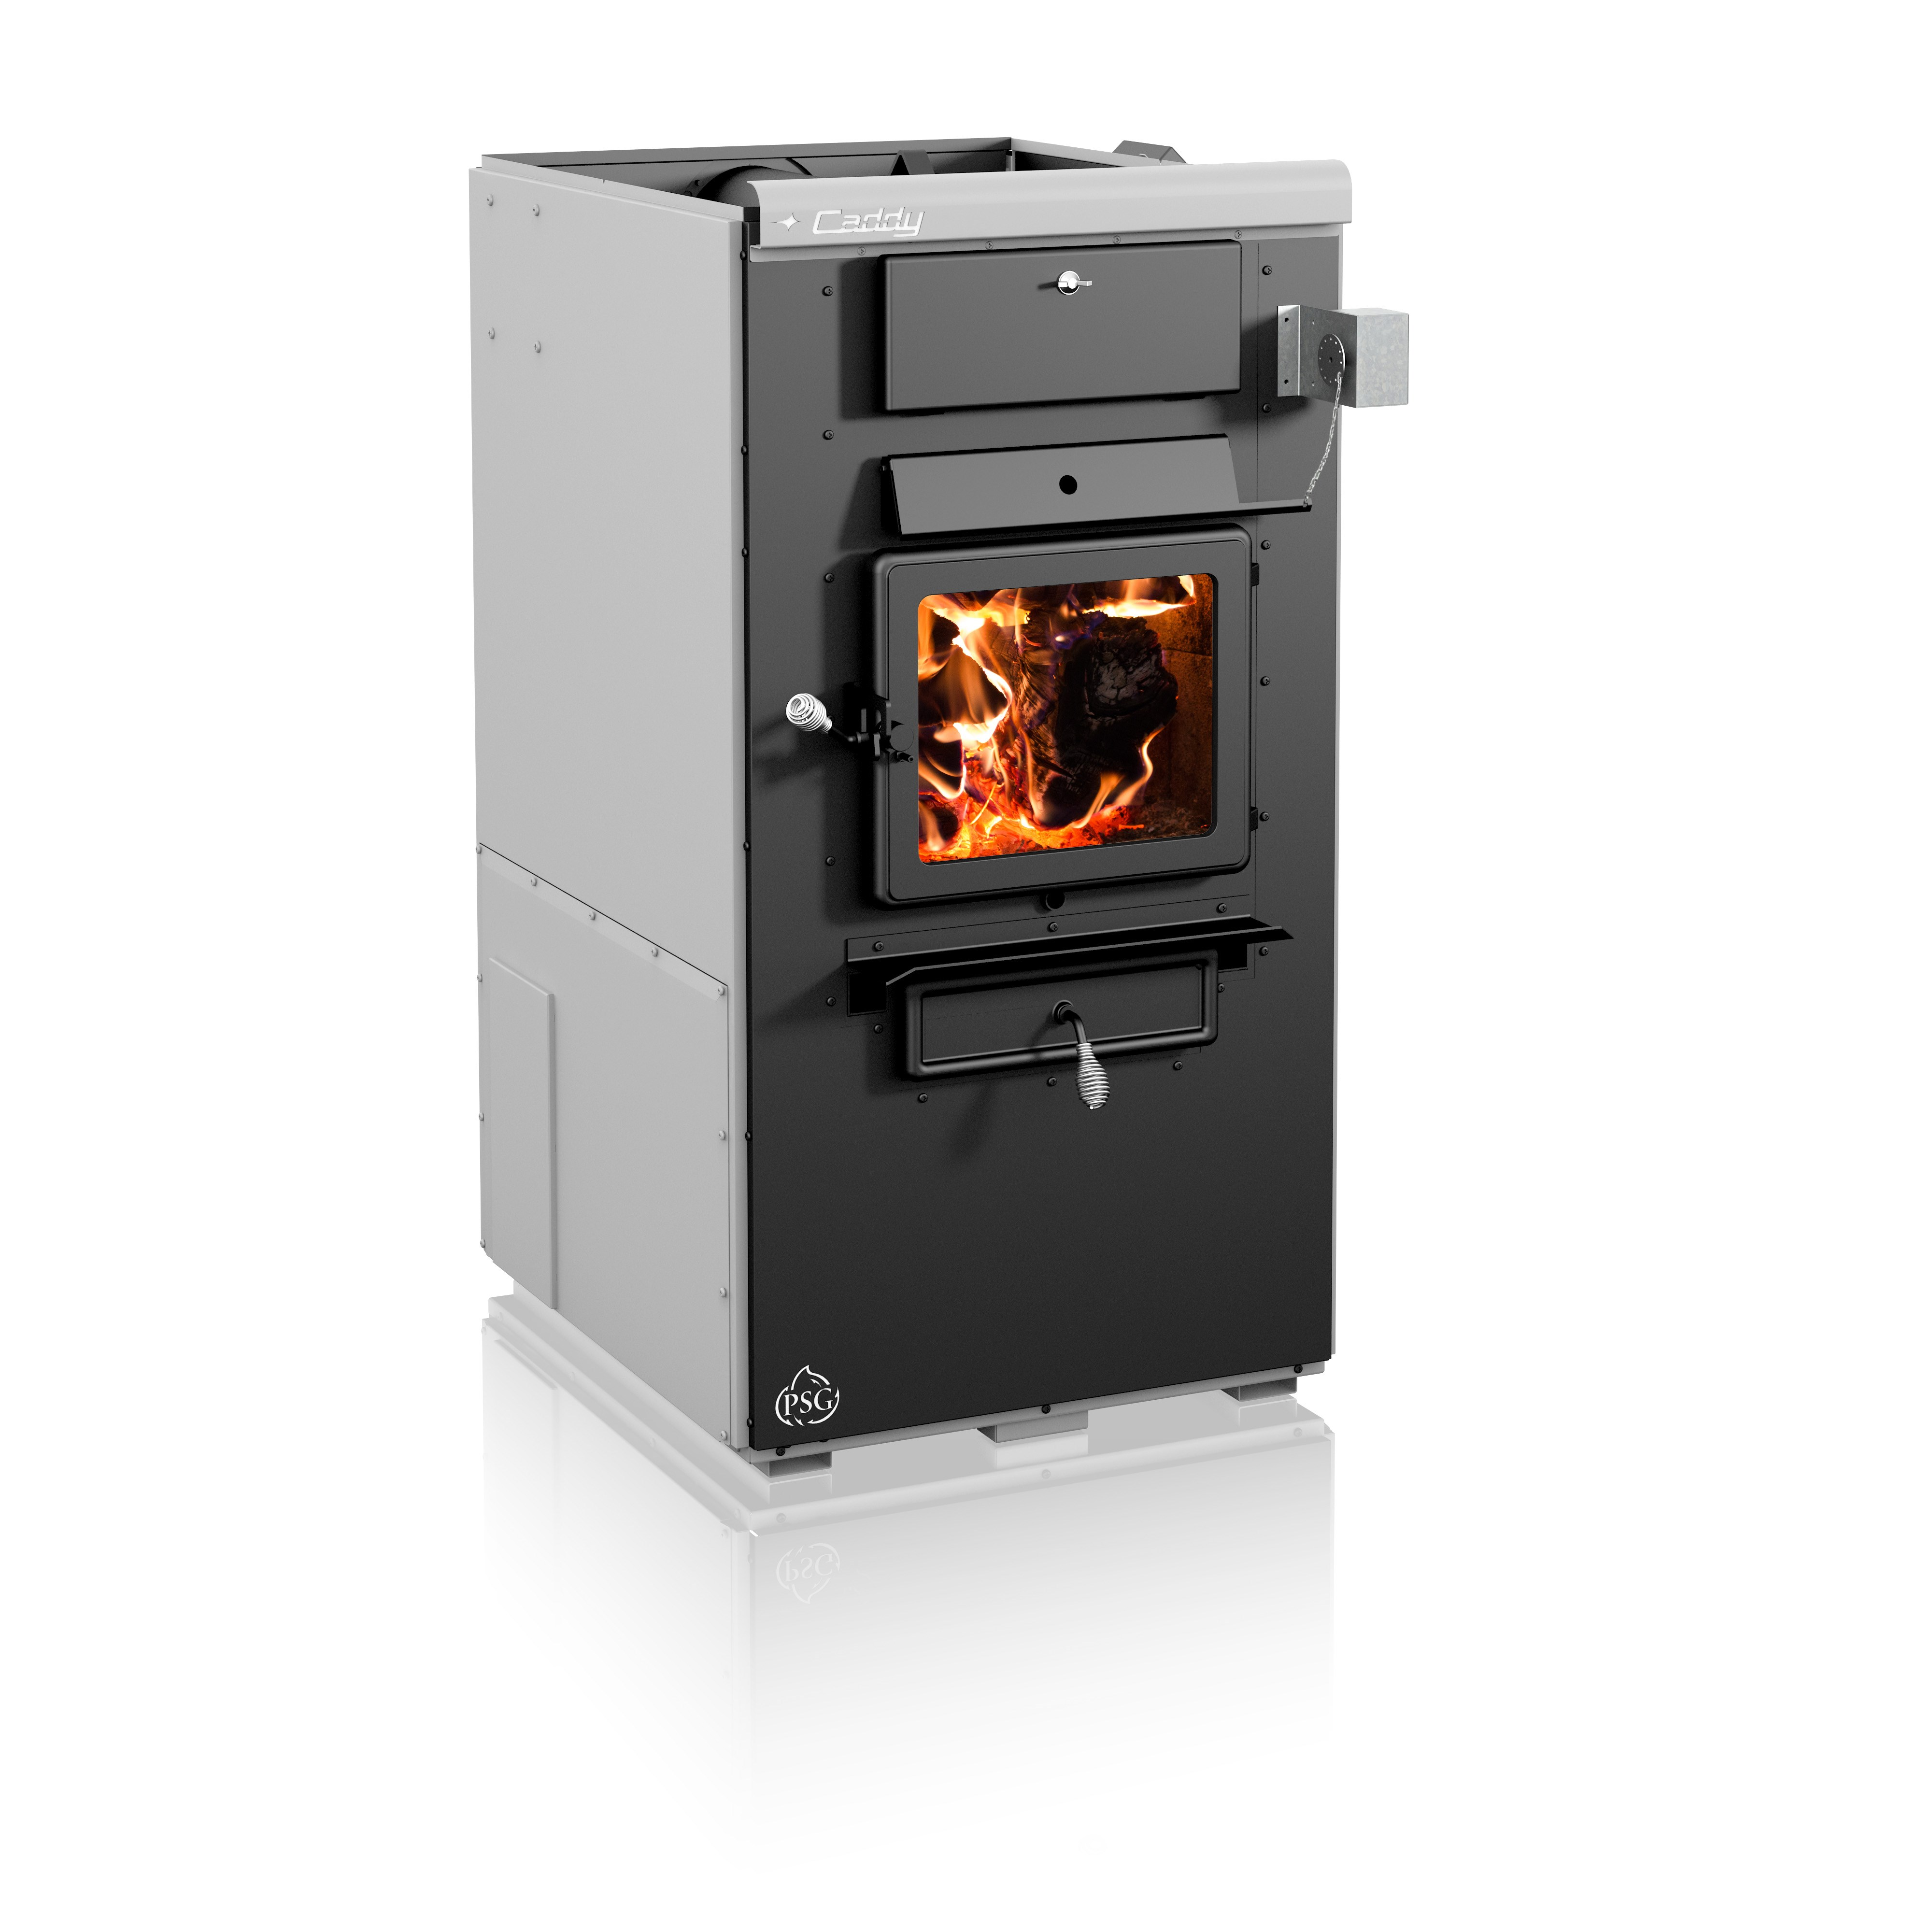 Wood Electric Combination Boiler Not Lossing Wiring Diagram Residential Furnace For Heating Caddy Furnaces Gas Boilers Homes